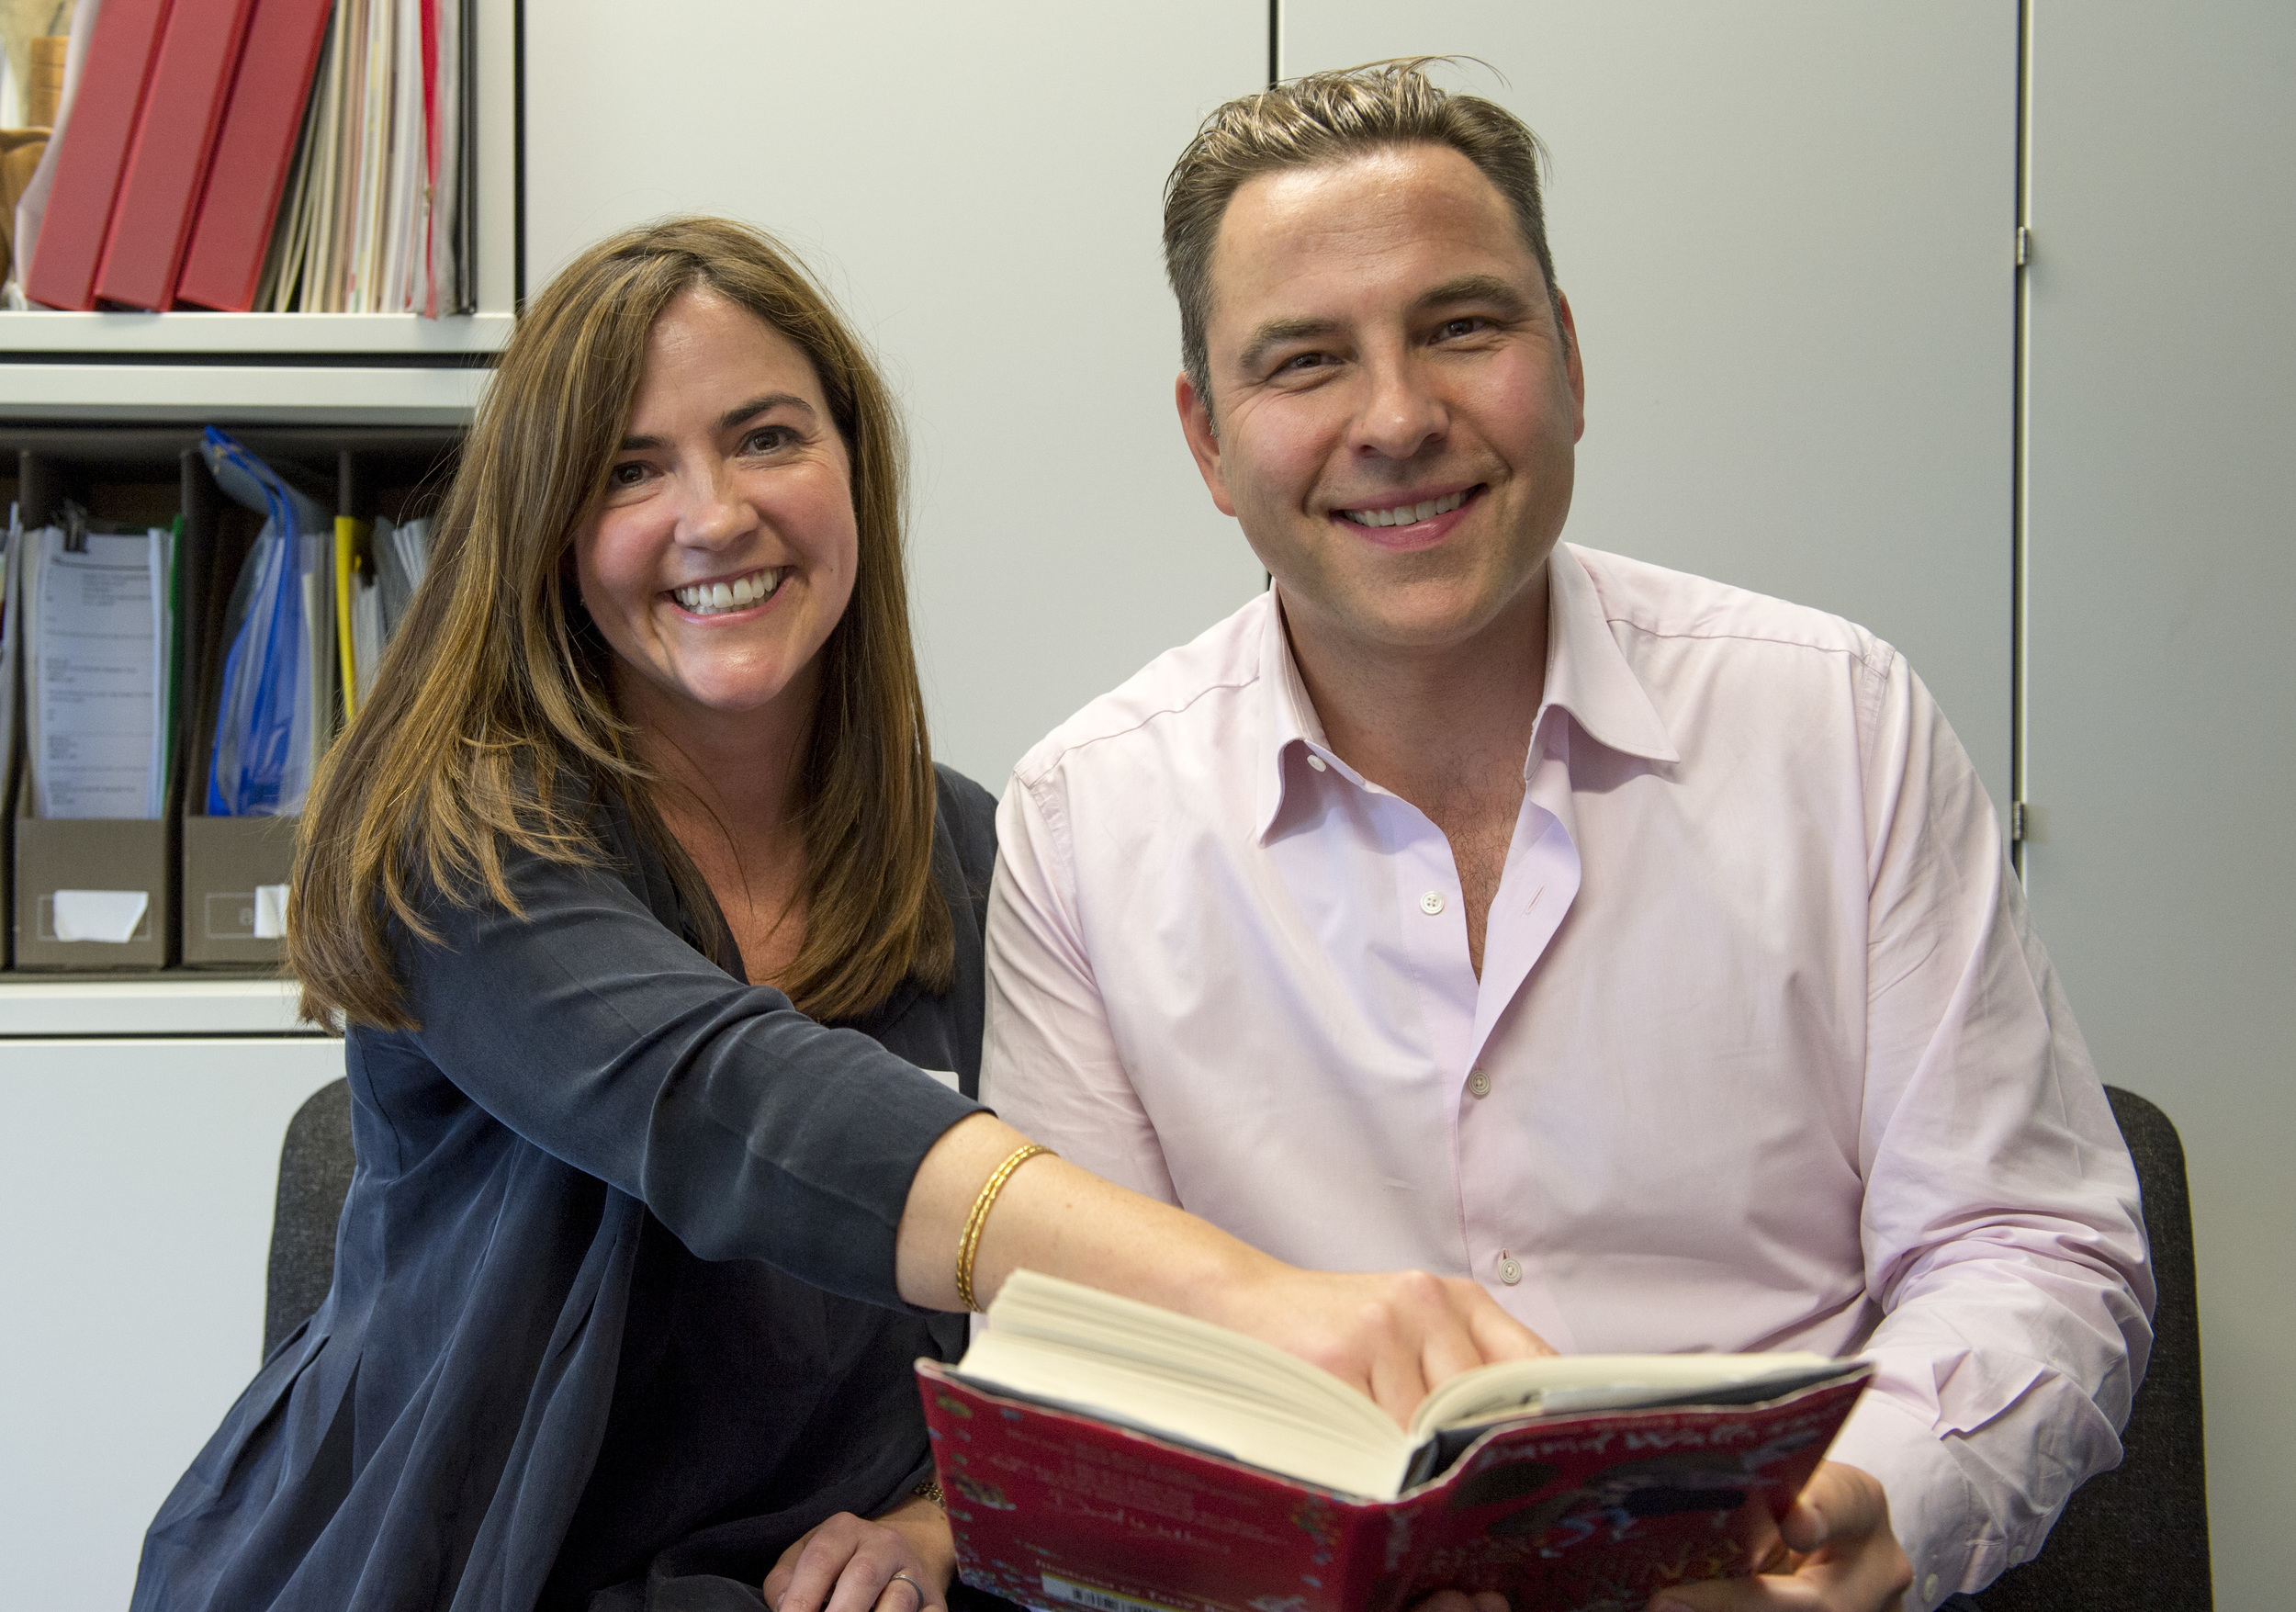 Sharon Hendry and David Walliams